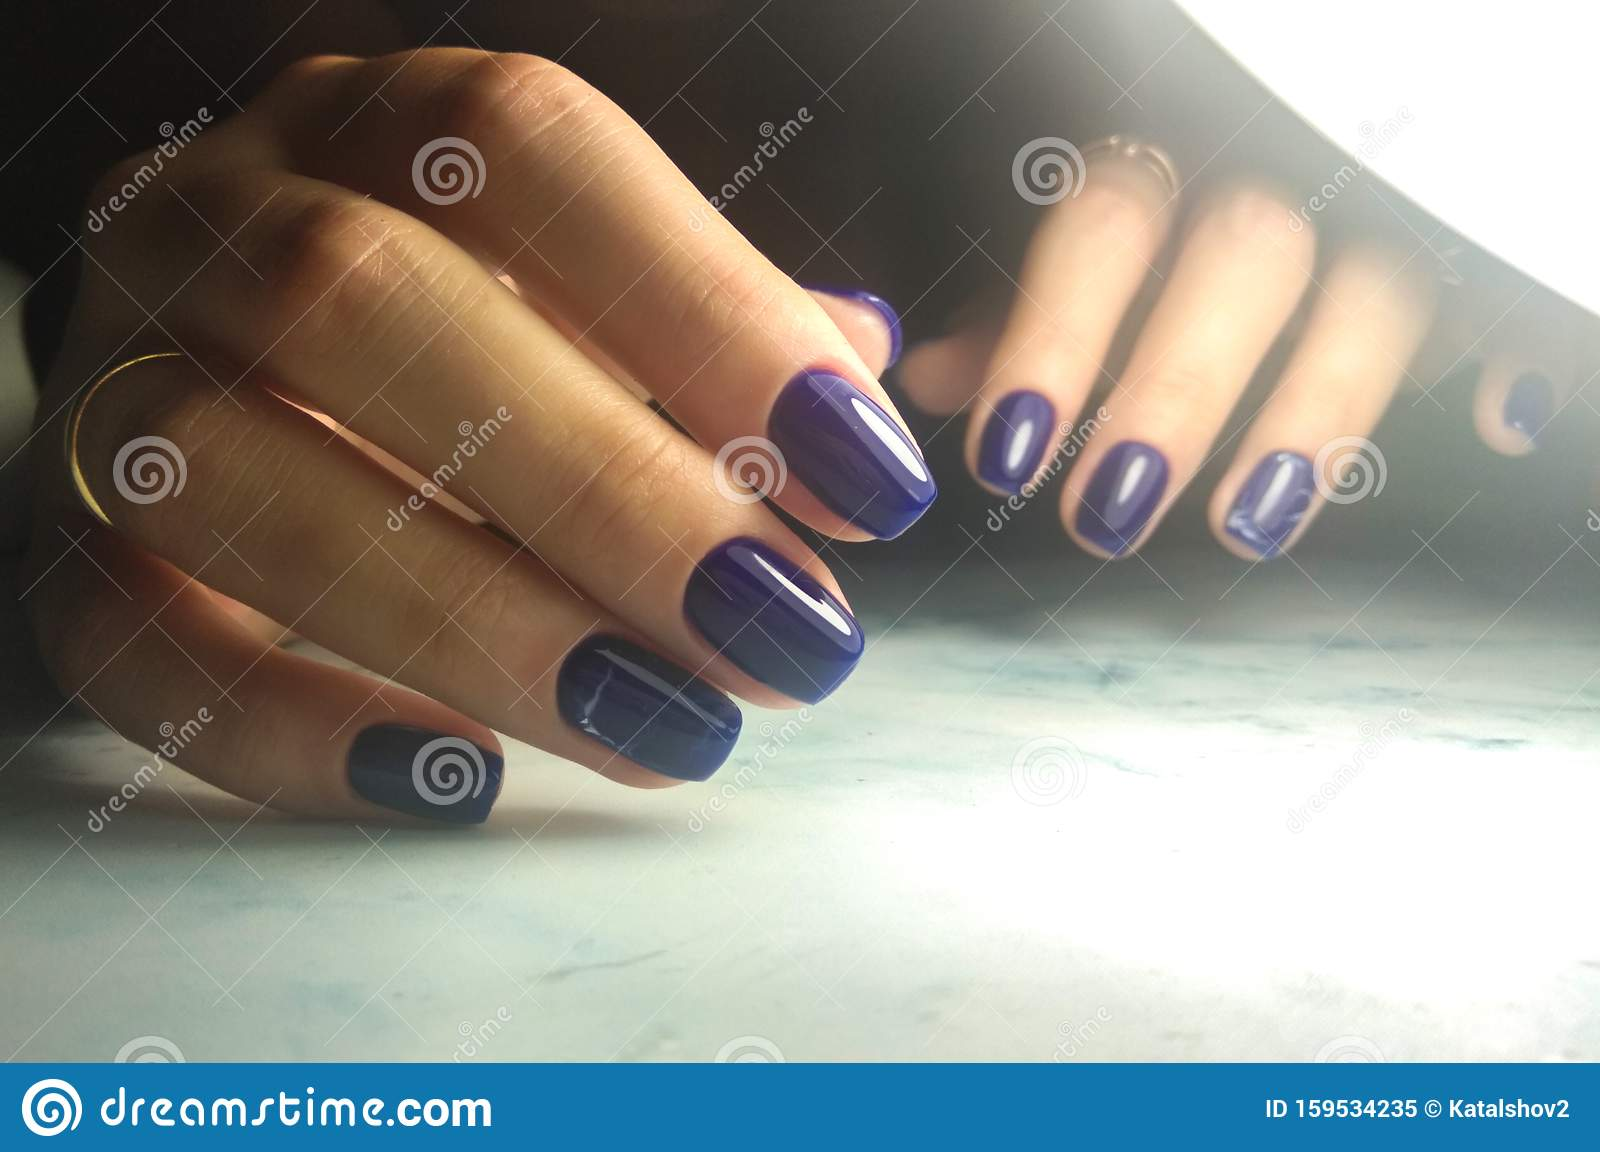 Dark Blue Gel Lacquer With Marble Design Stock Image Image Of Geometric Finger 159534235